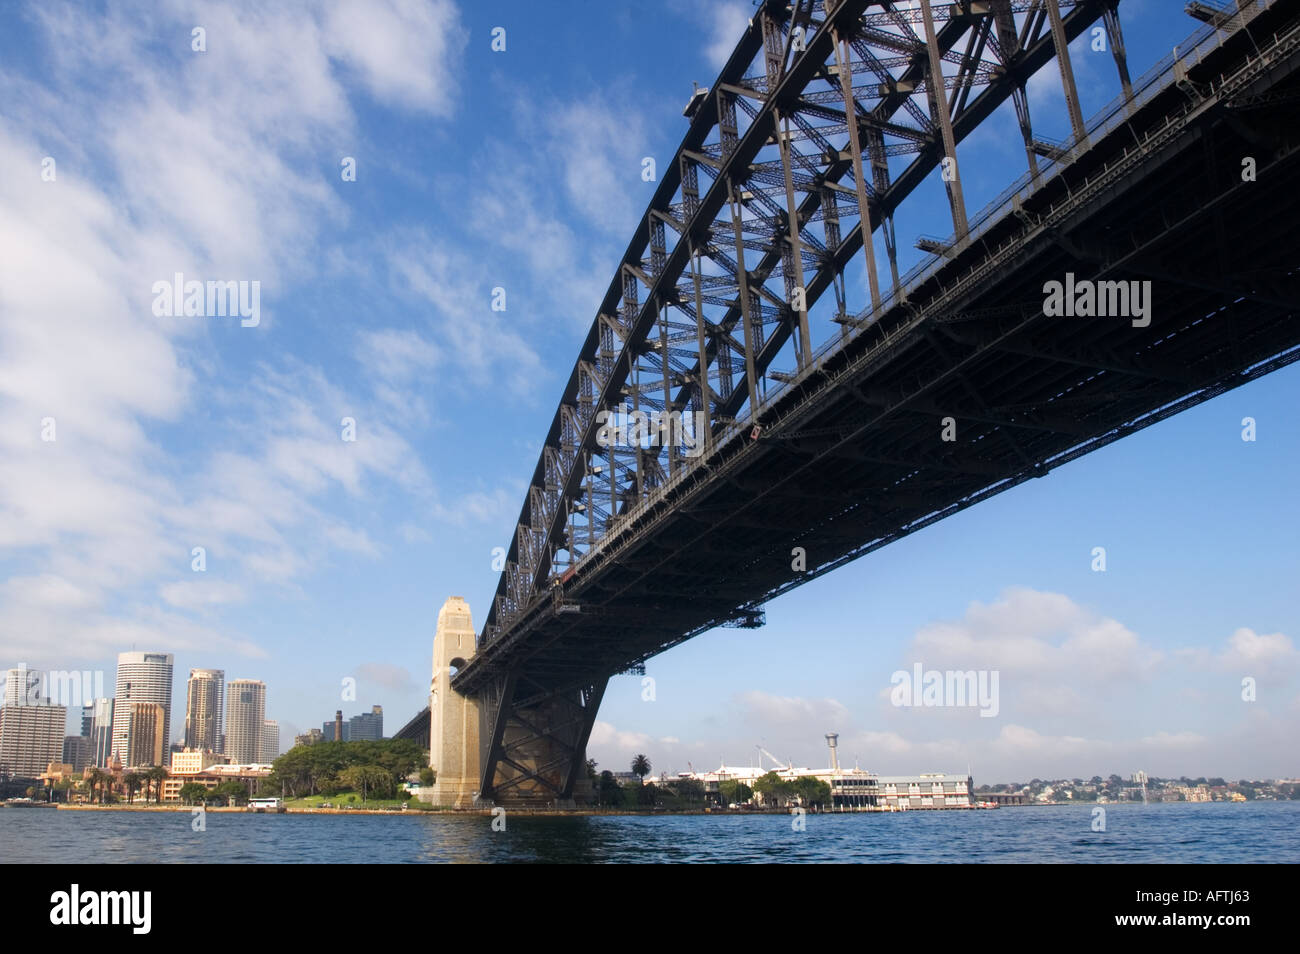 Australia, Sydney, Sydney Harbour Bridge - Stock Image